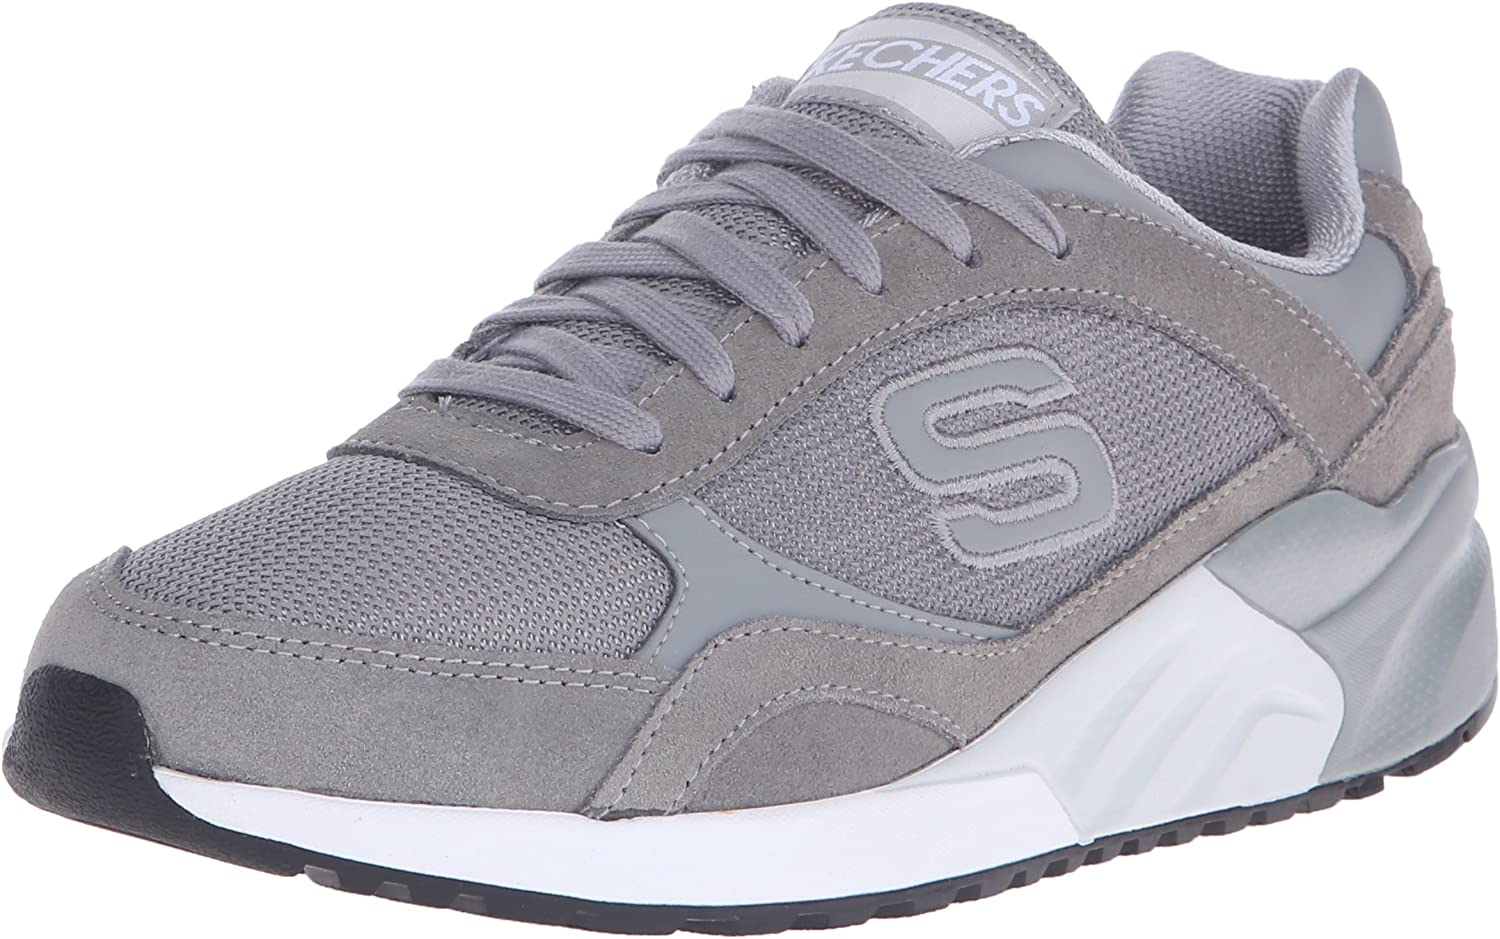 Skechers Originals Retros Og 95 Fashion Sneaker